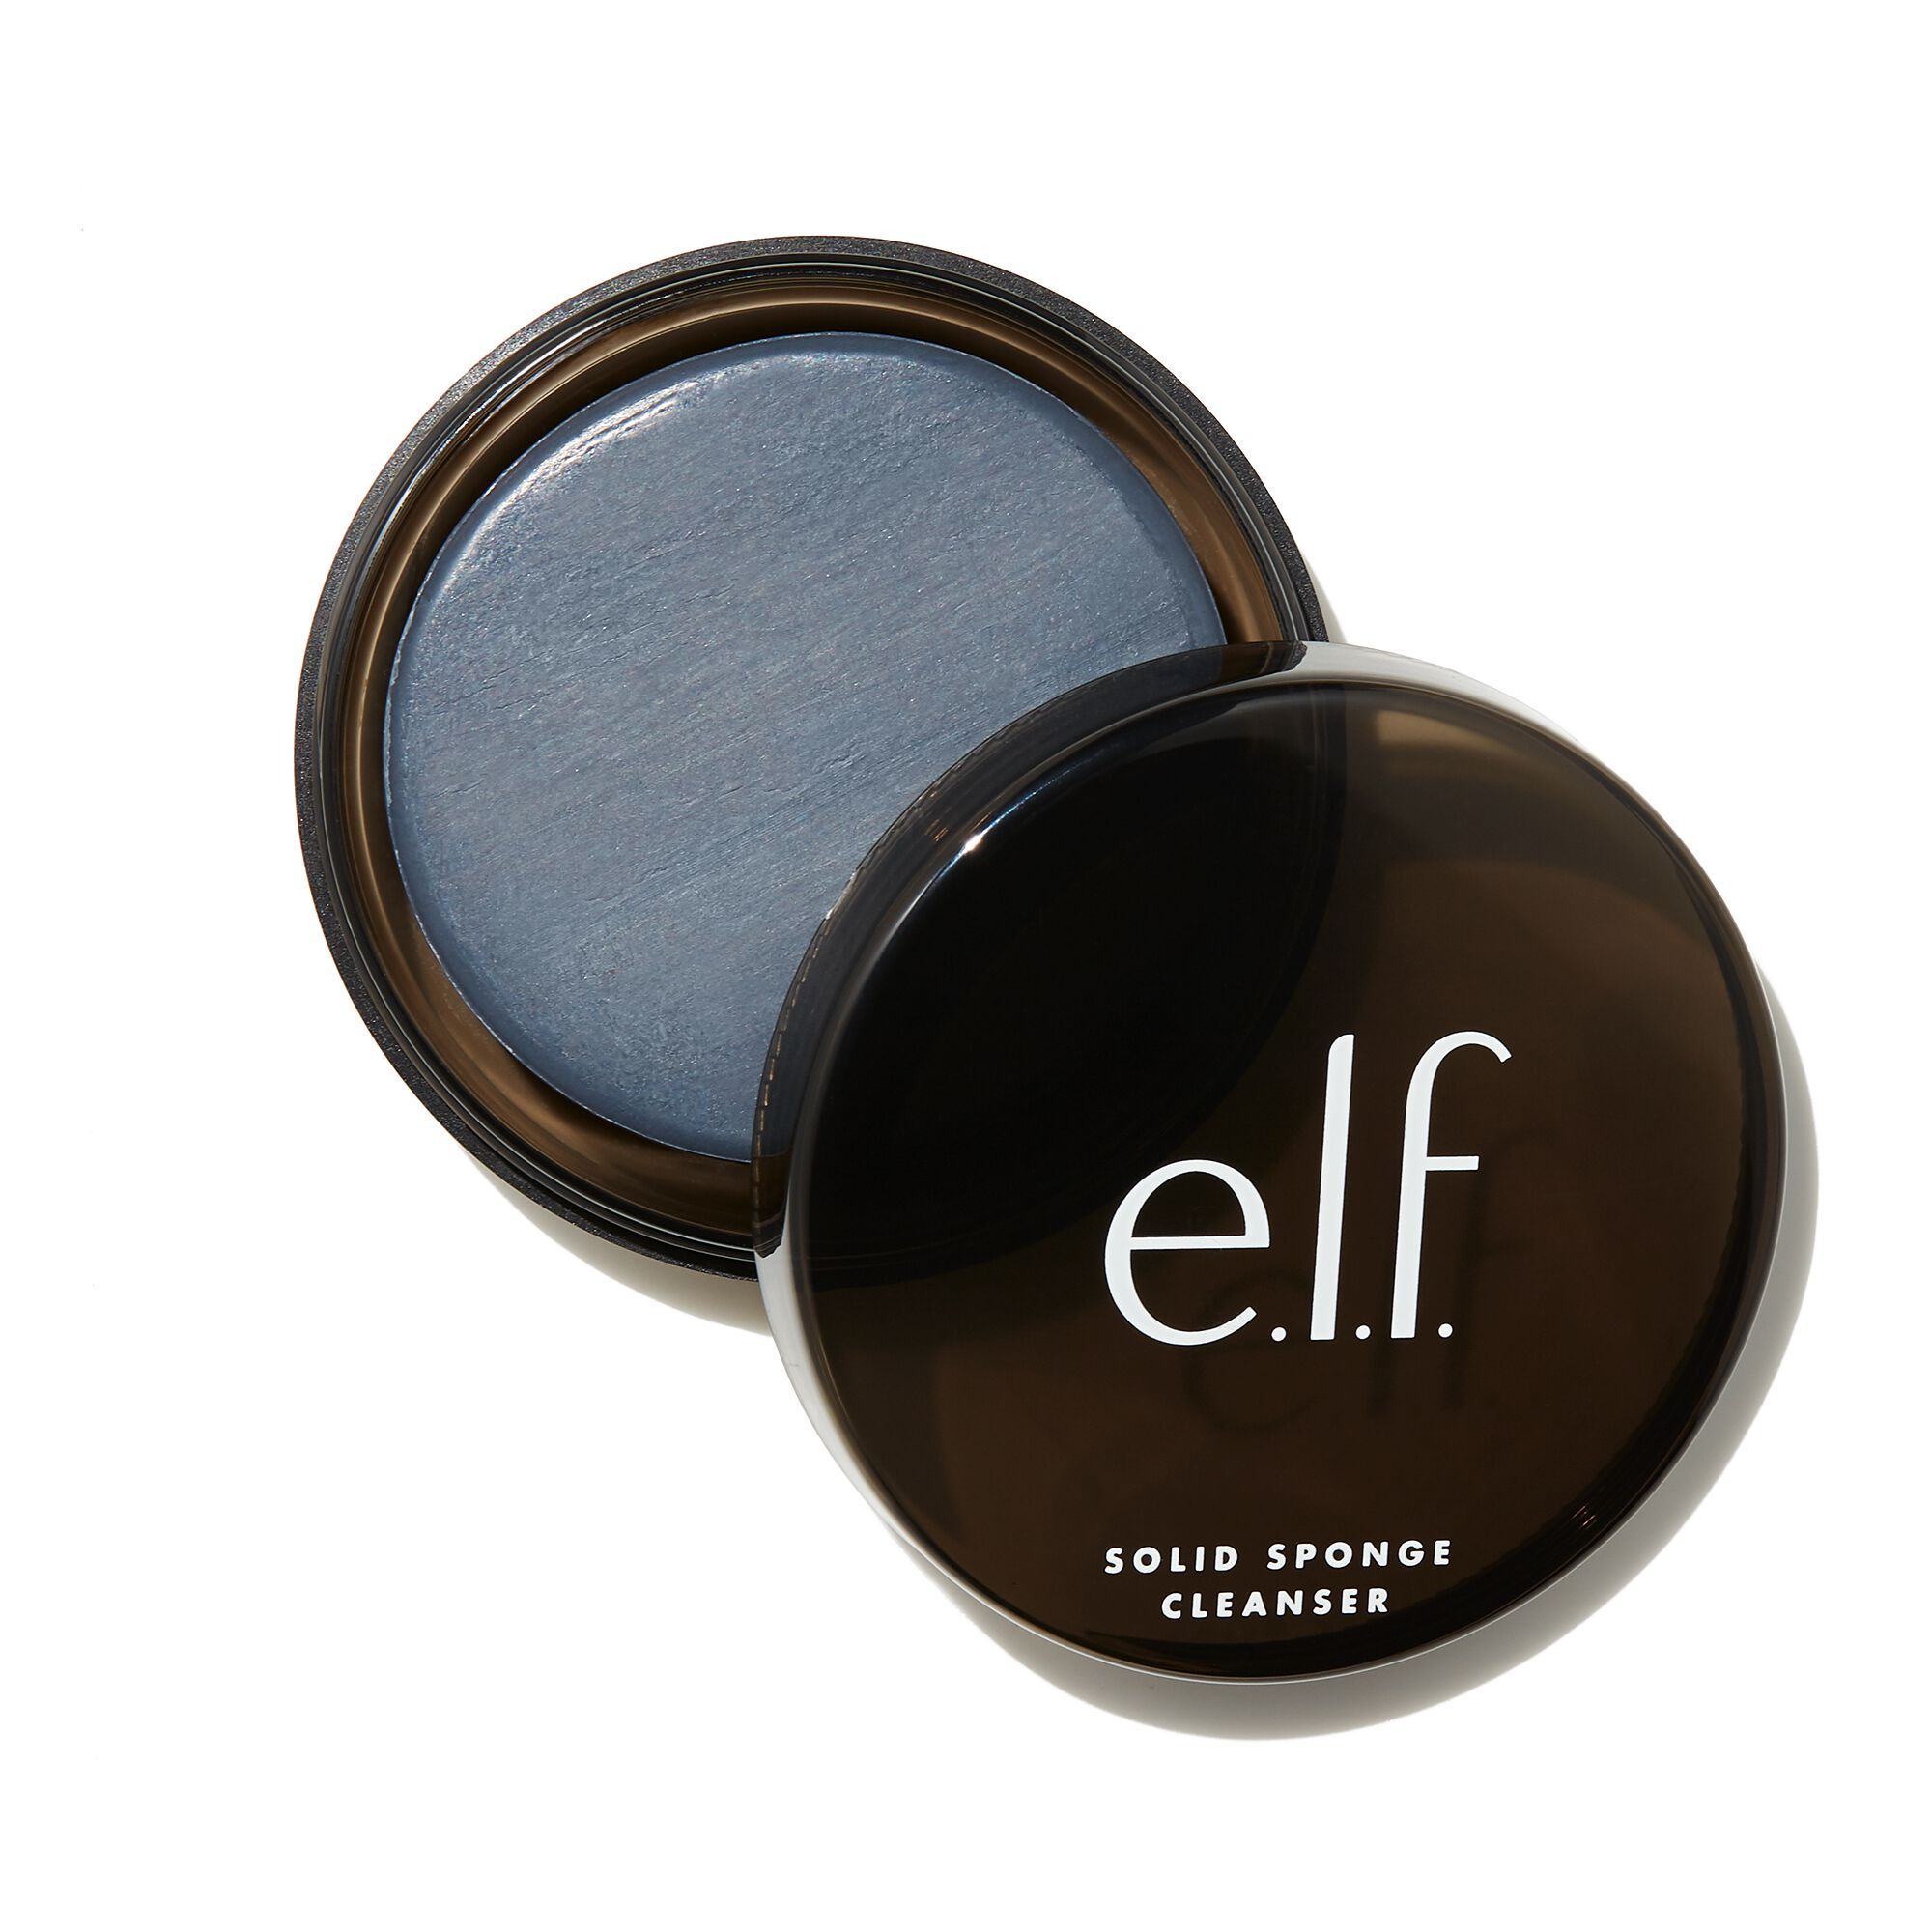 E.L.F. Solid Soap | Affordable Makeup Brush Cleaner Products